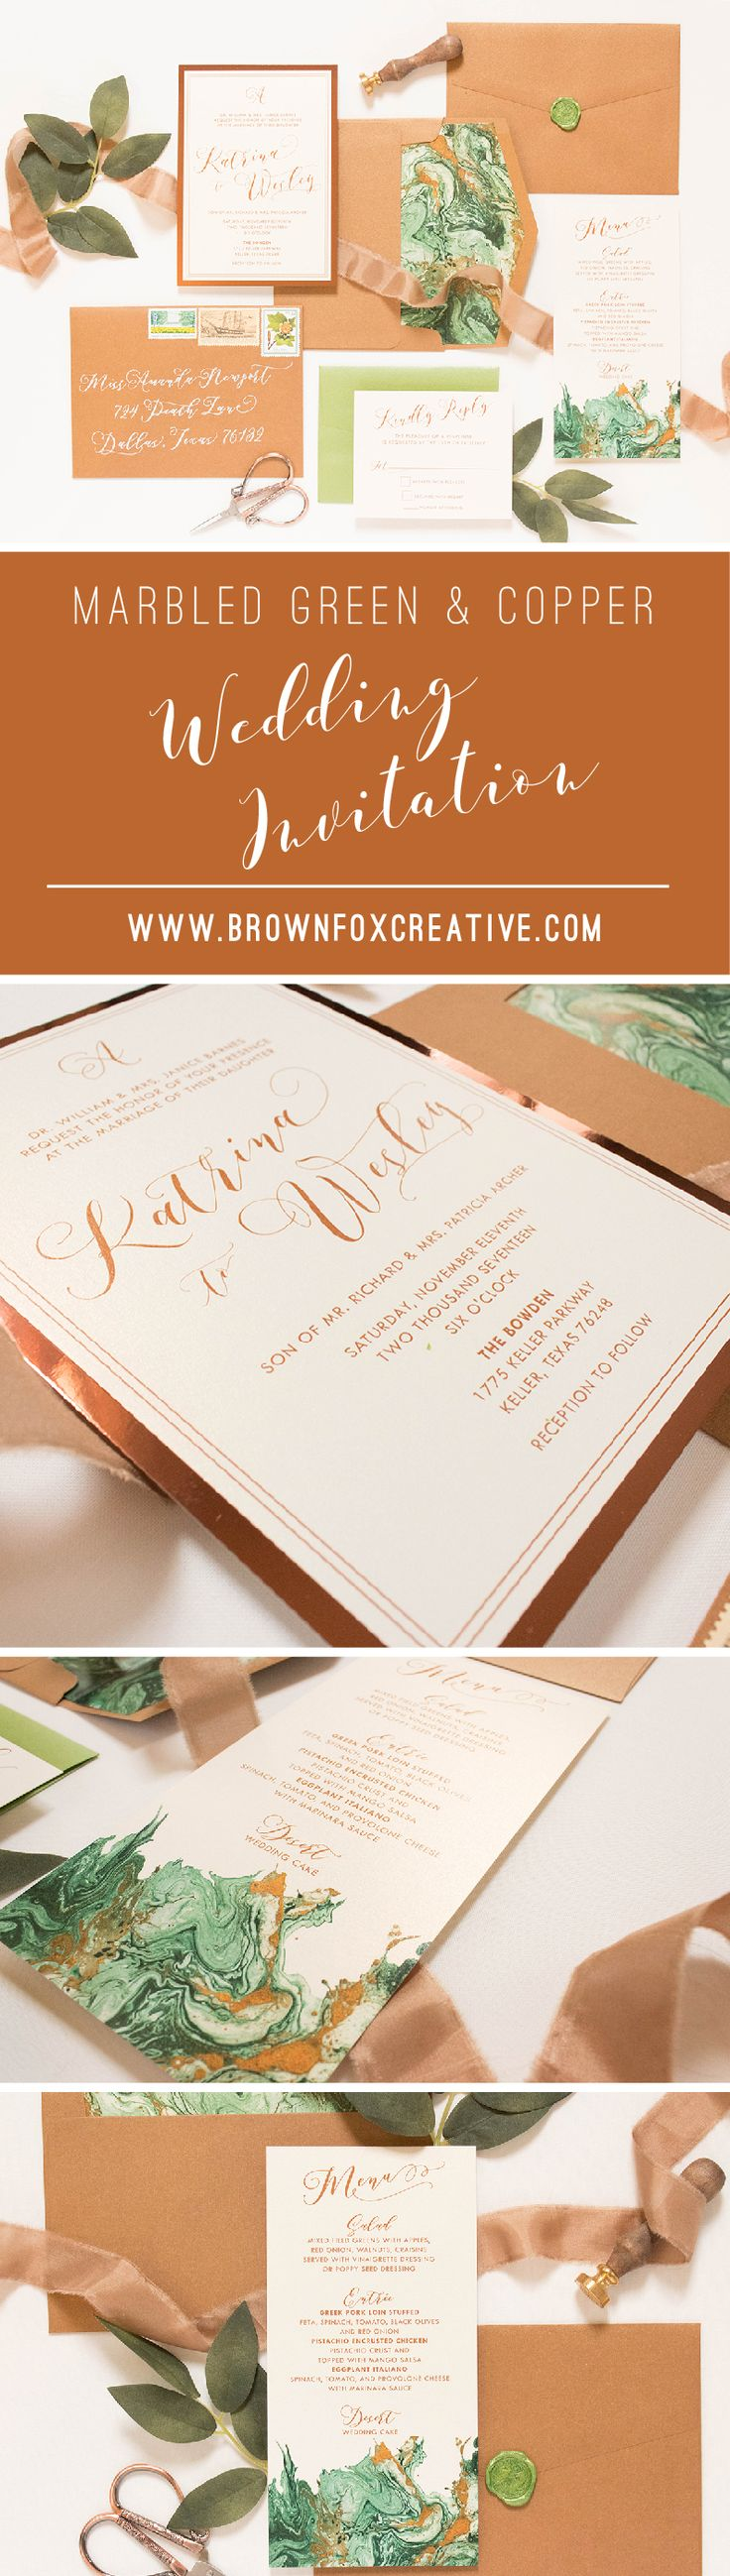 how to address wedding invitations inside envelope%0A Shades of Green  u     Copper Marble  Rose Gold and Ivory Wedding Invitation  u      Includes Envelope